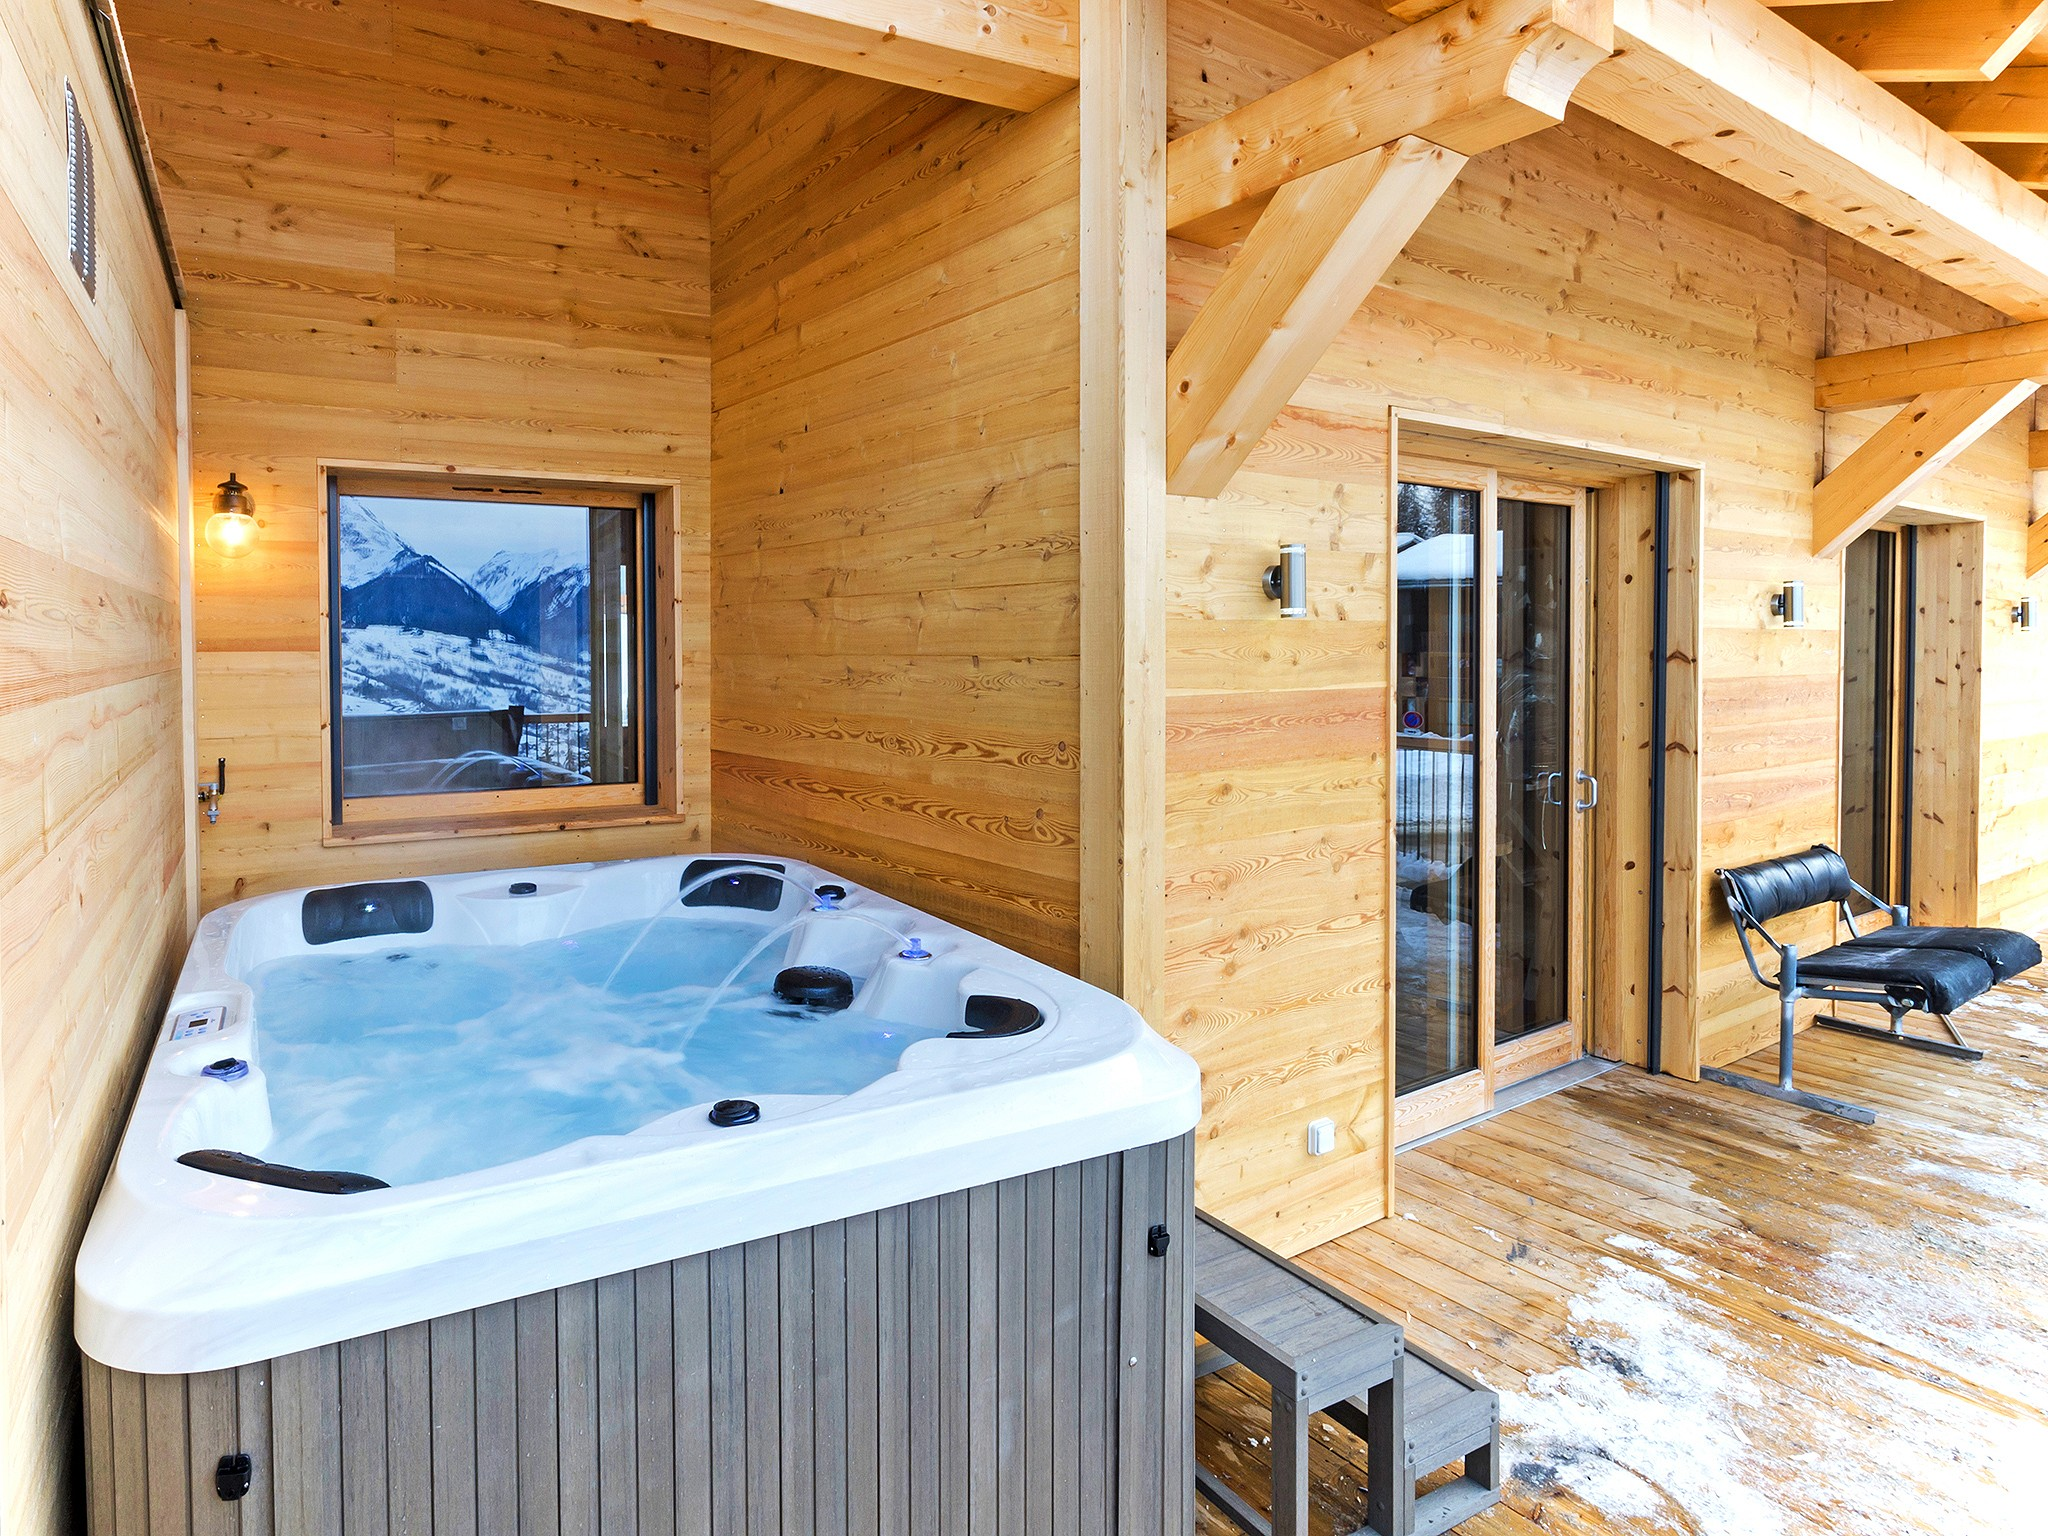 Chalet Ski Dream - outdoor jacuzzi